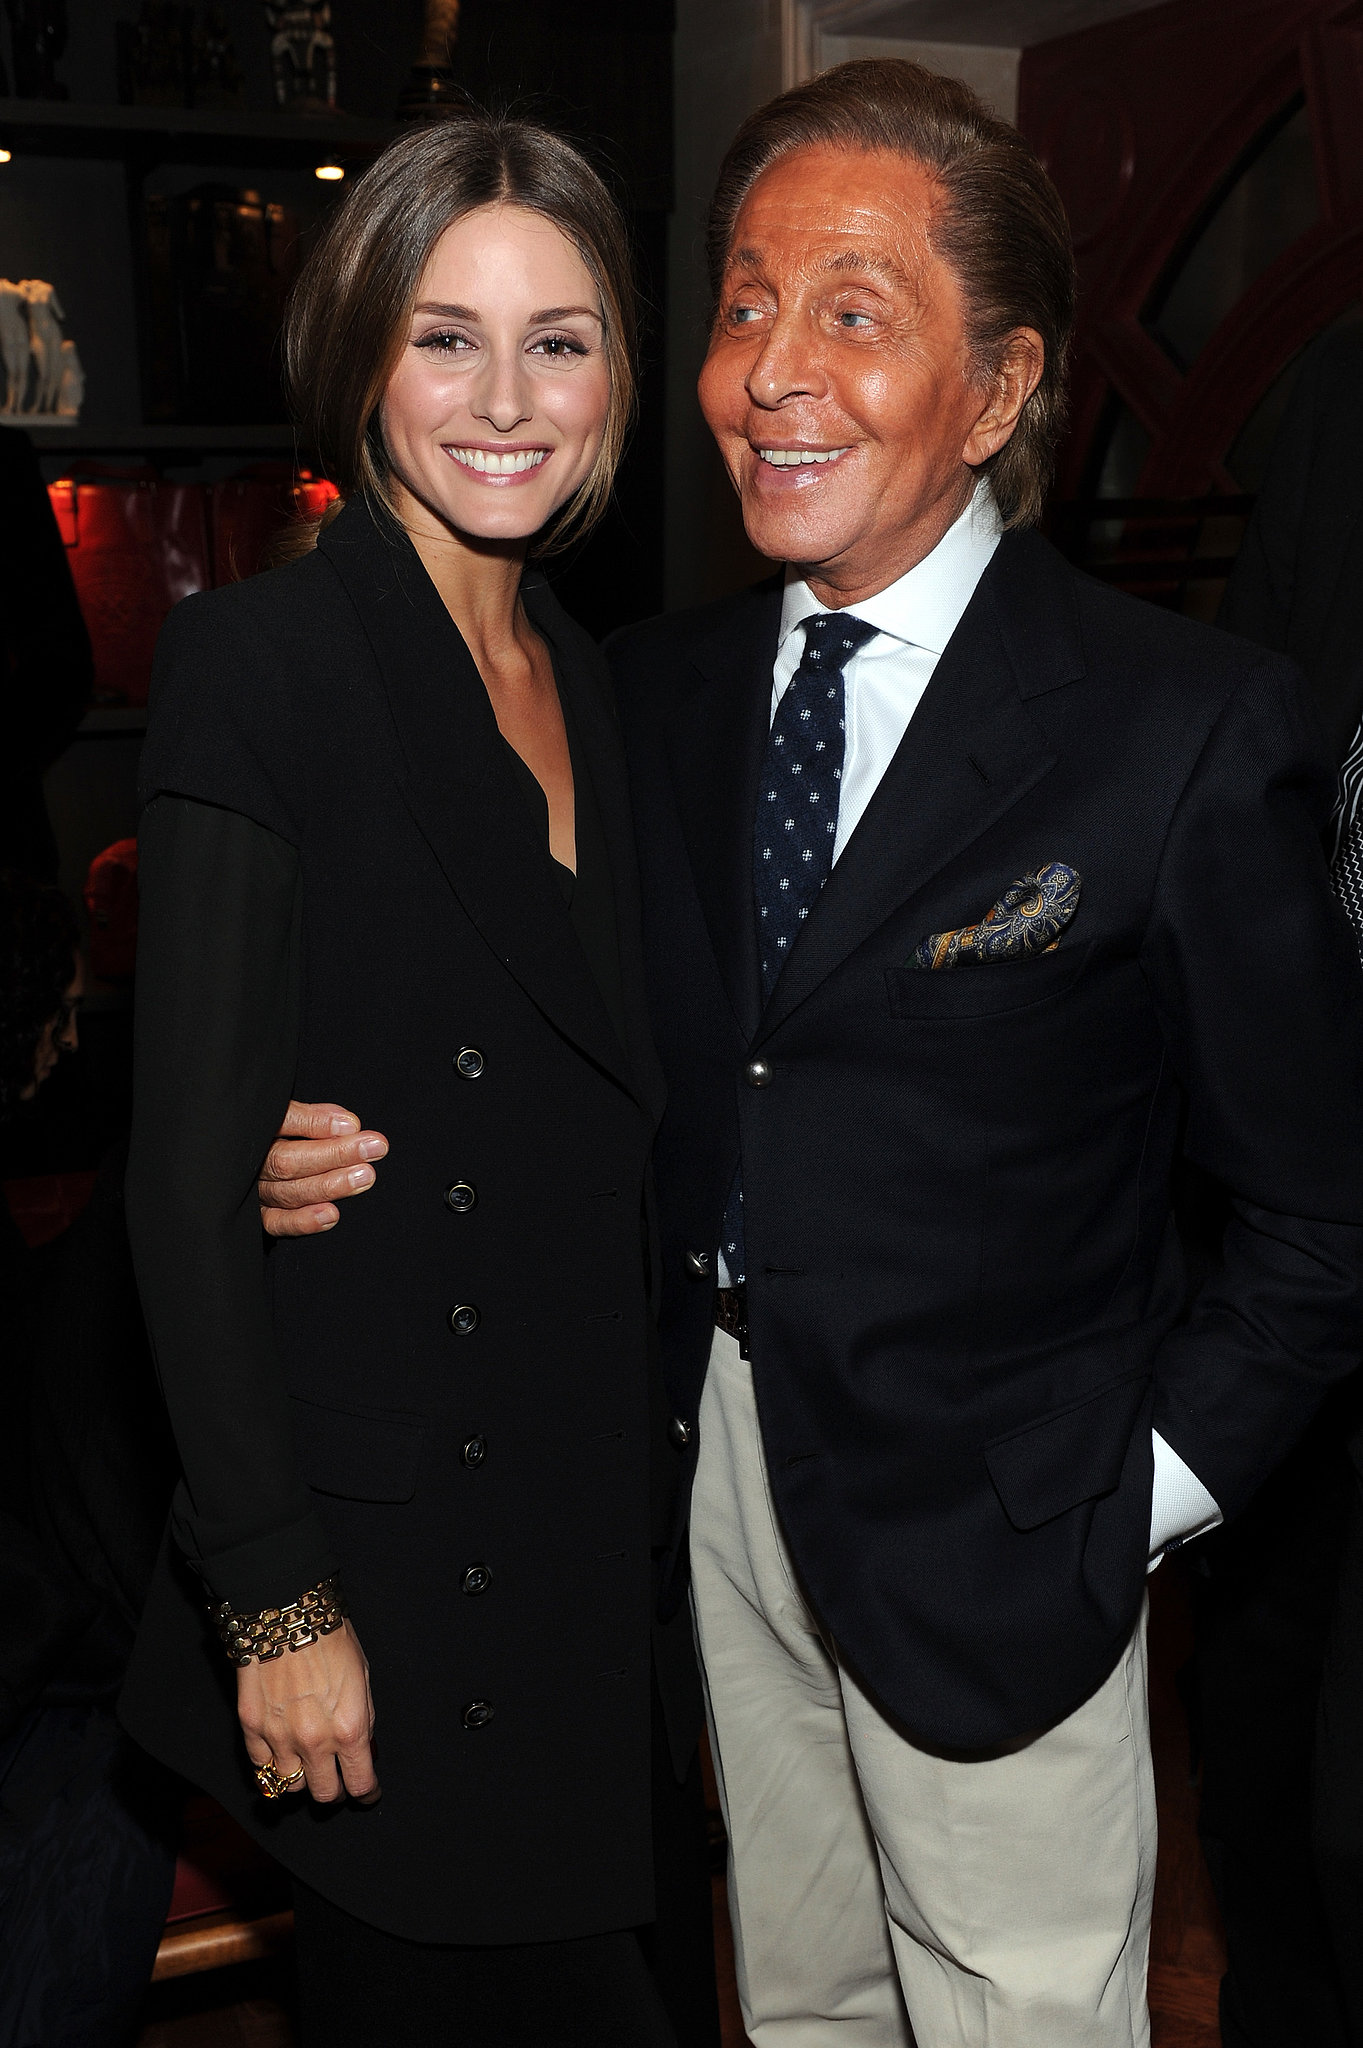 Olivia Palermo and Valentino Garavani feted the Private book party in New York.